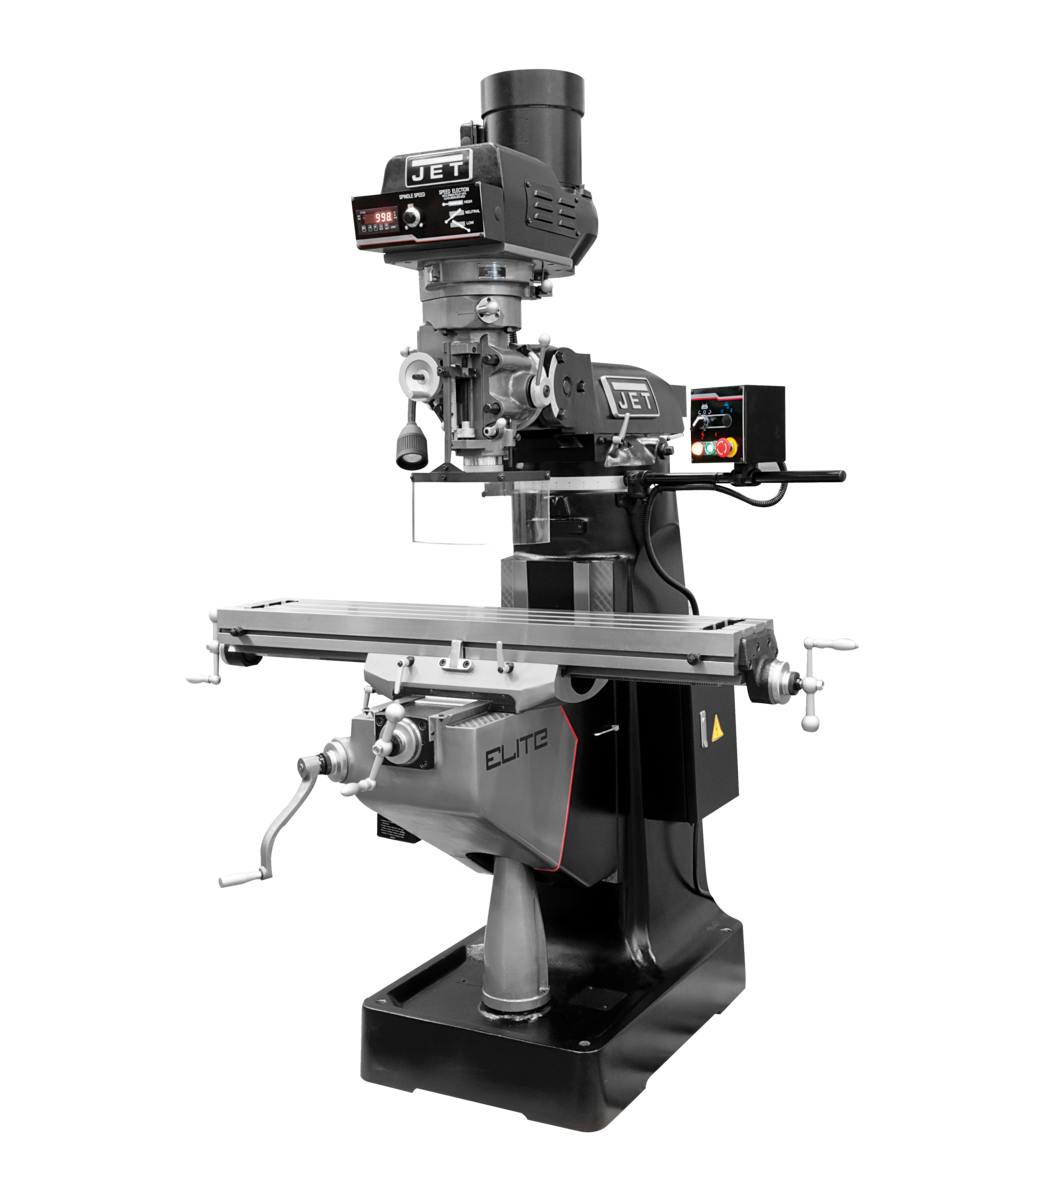 EVS-949 Mill with 3-Axis ACU-RITE 203 (Quill) DRO and Servo X, Y-Axis Powerfeeds